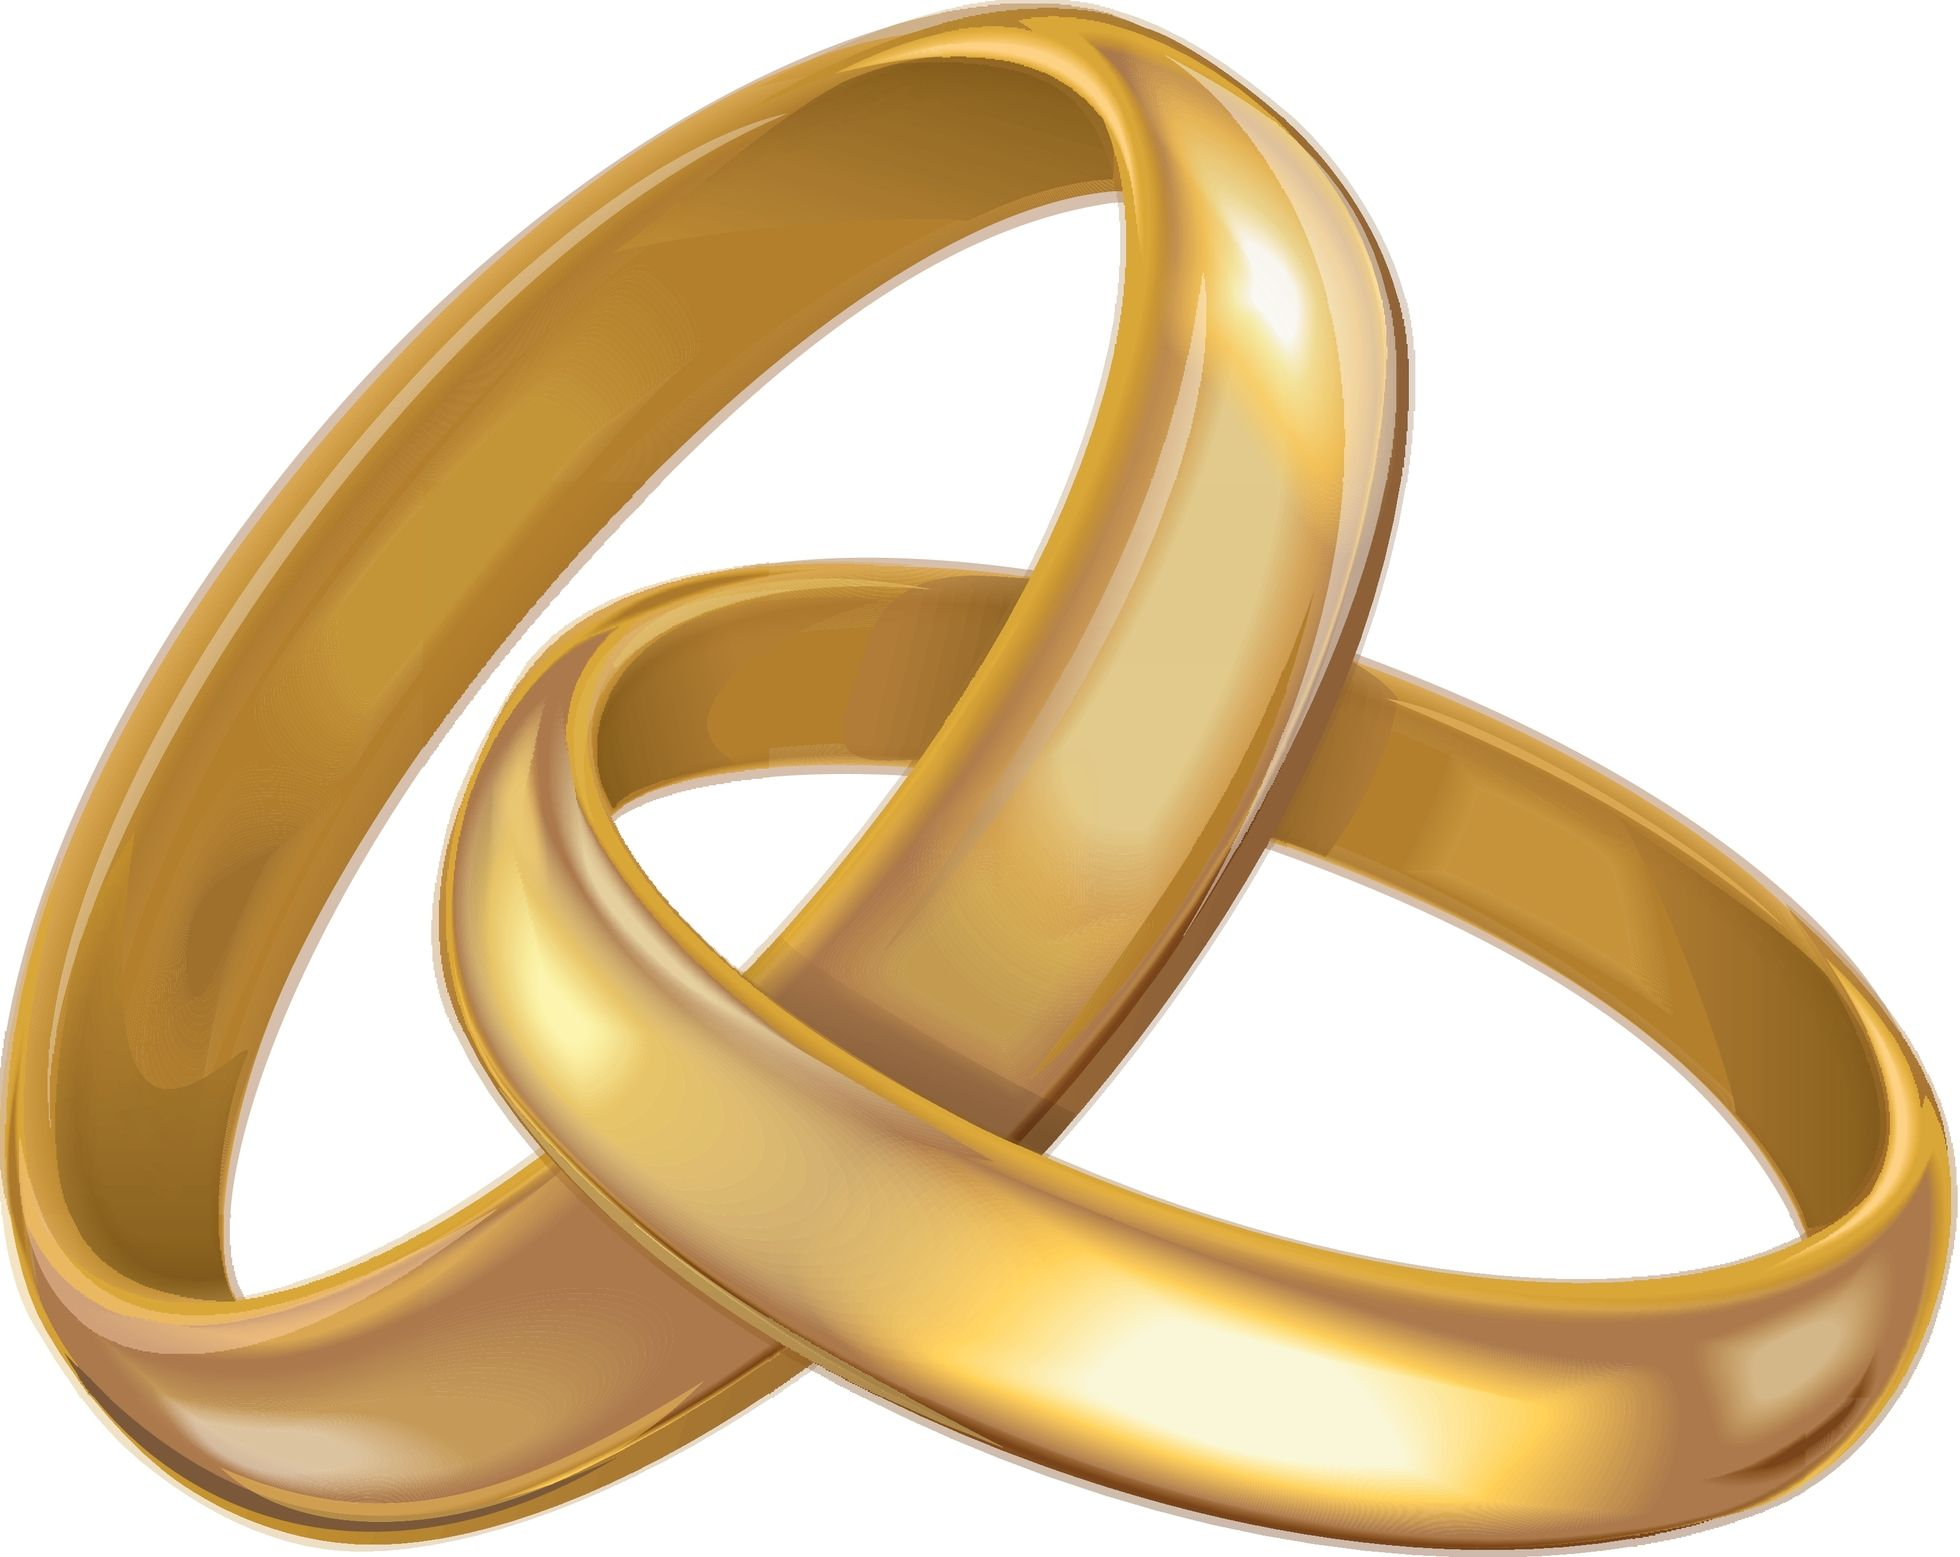 small resolution of wedding rings clipart with wedding ring clip art wedding wedding rings clipart